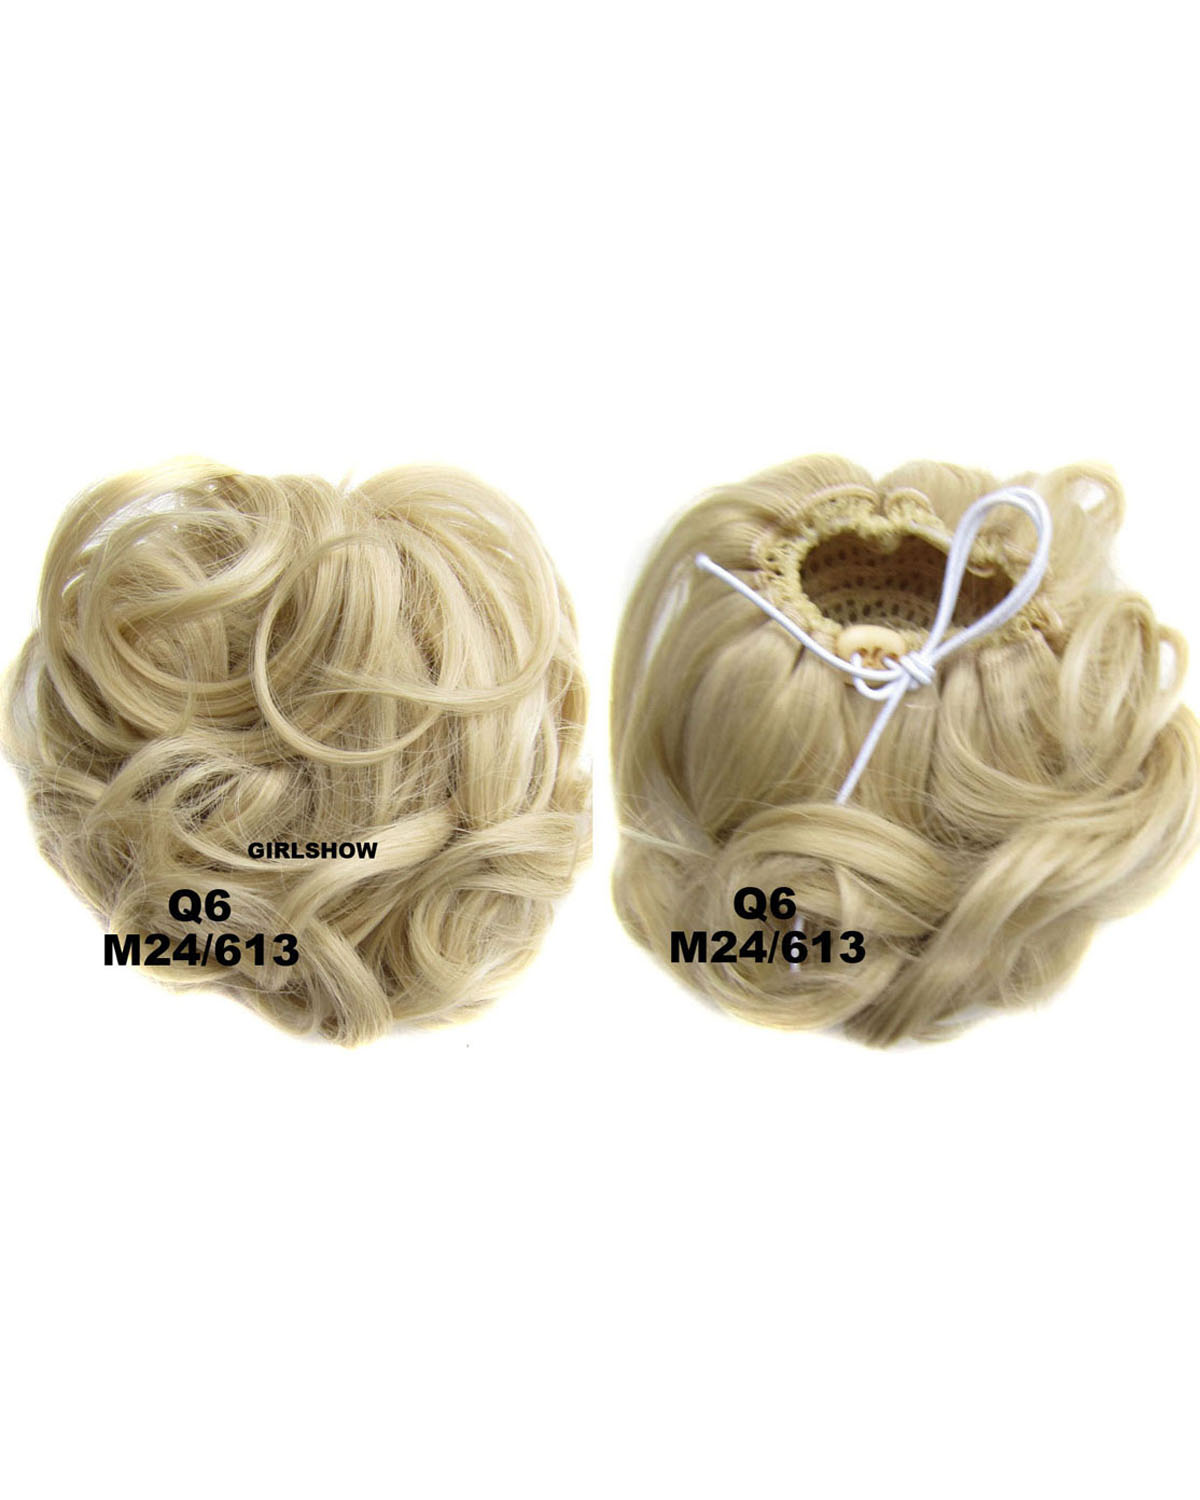 Ladies  Refinement Curly and Short Hair Buns Drawstring Synthetic Hair Extension Bride Scrunchies M24/613